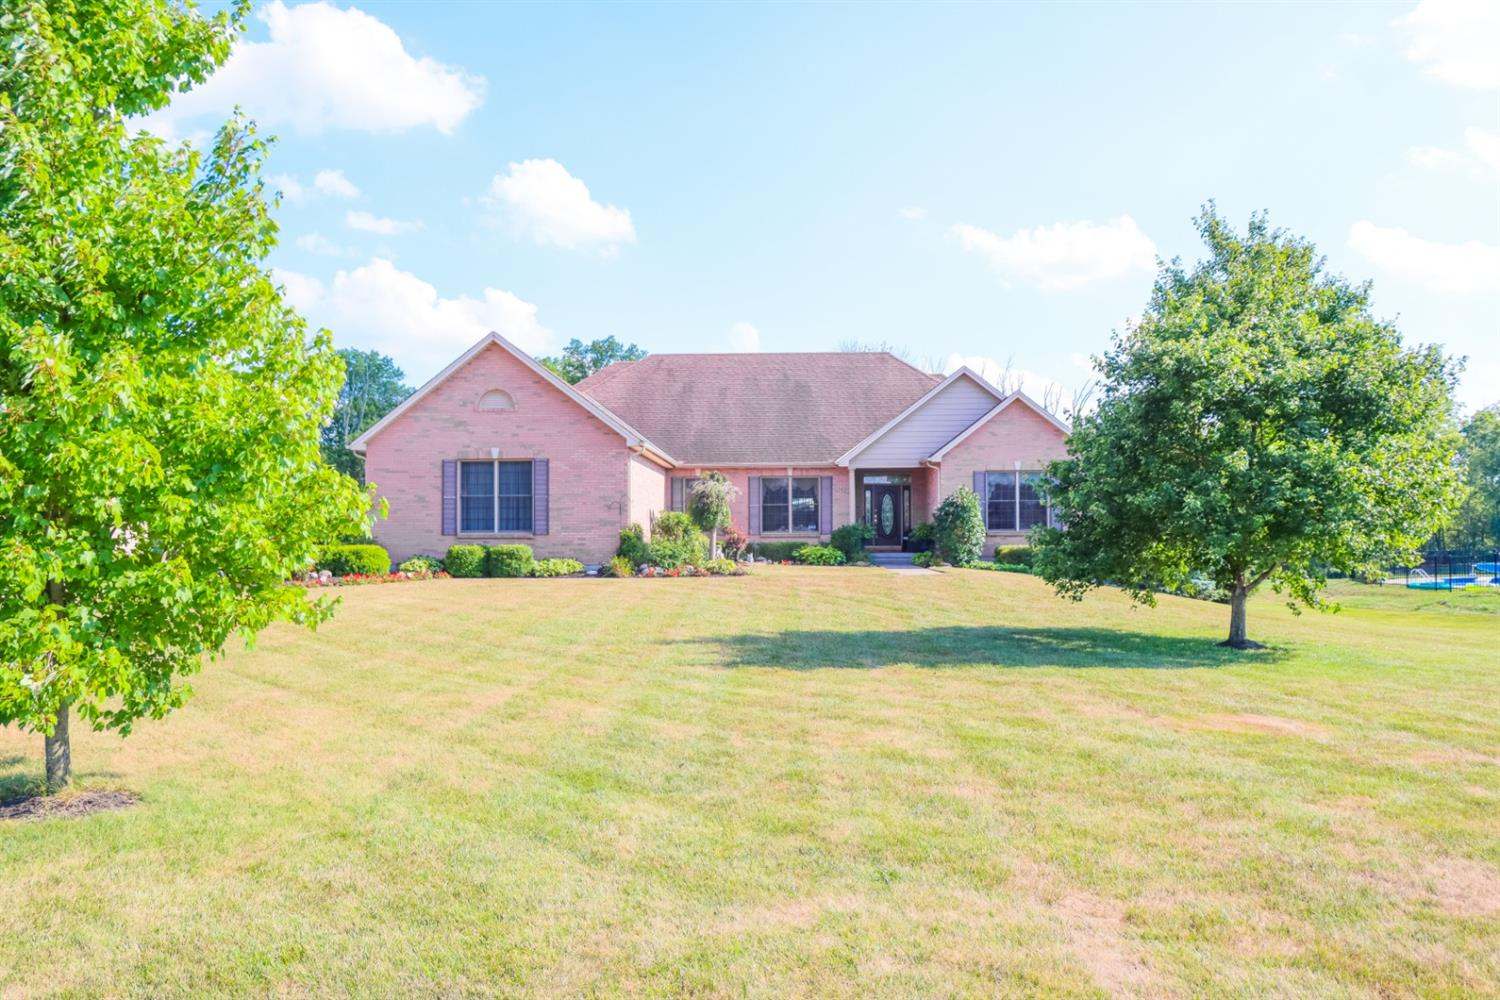 Property for sale at 1581 Vicki Lane, Clearcreek Twp.,  Ohio 45036